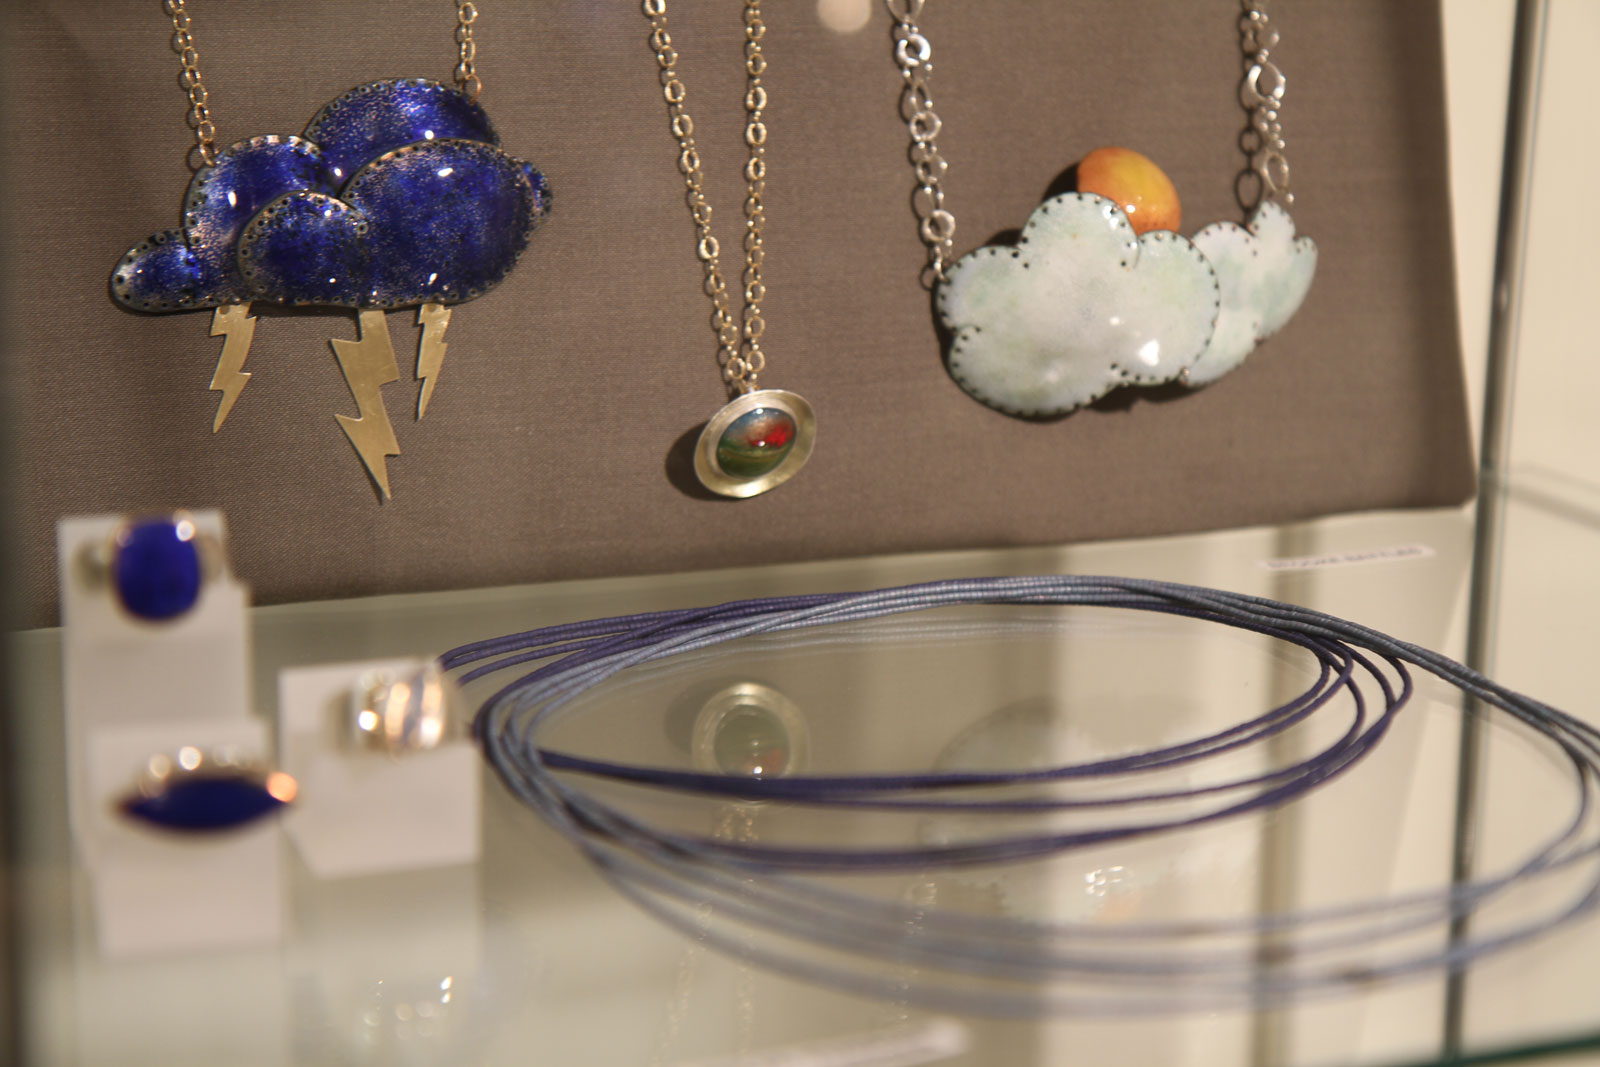 Lightning and thunderclouds, with a touch of sun, adorn Brooke Battles' enamel pendants.